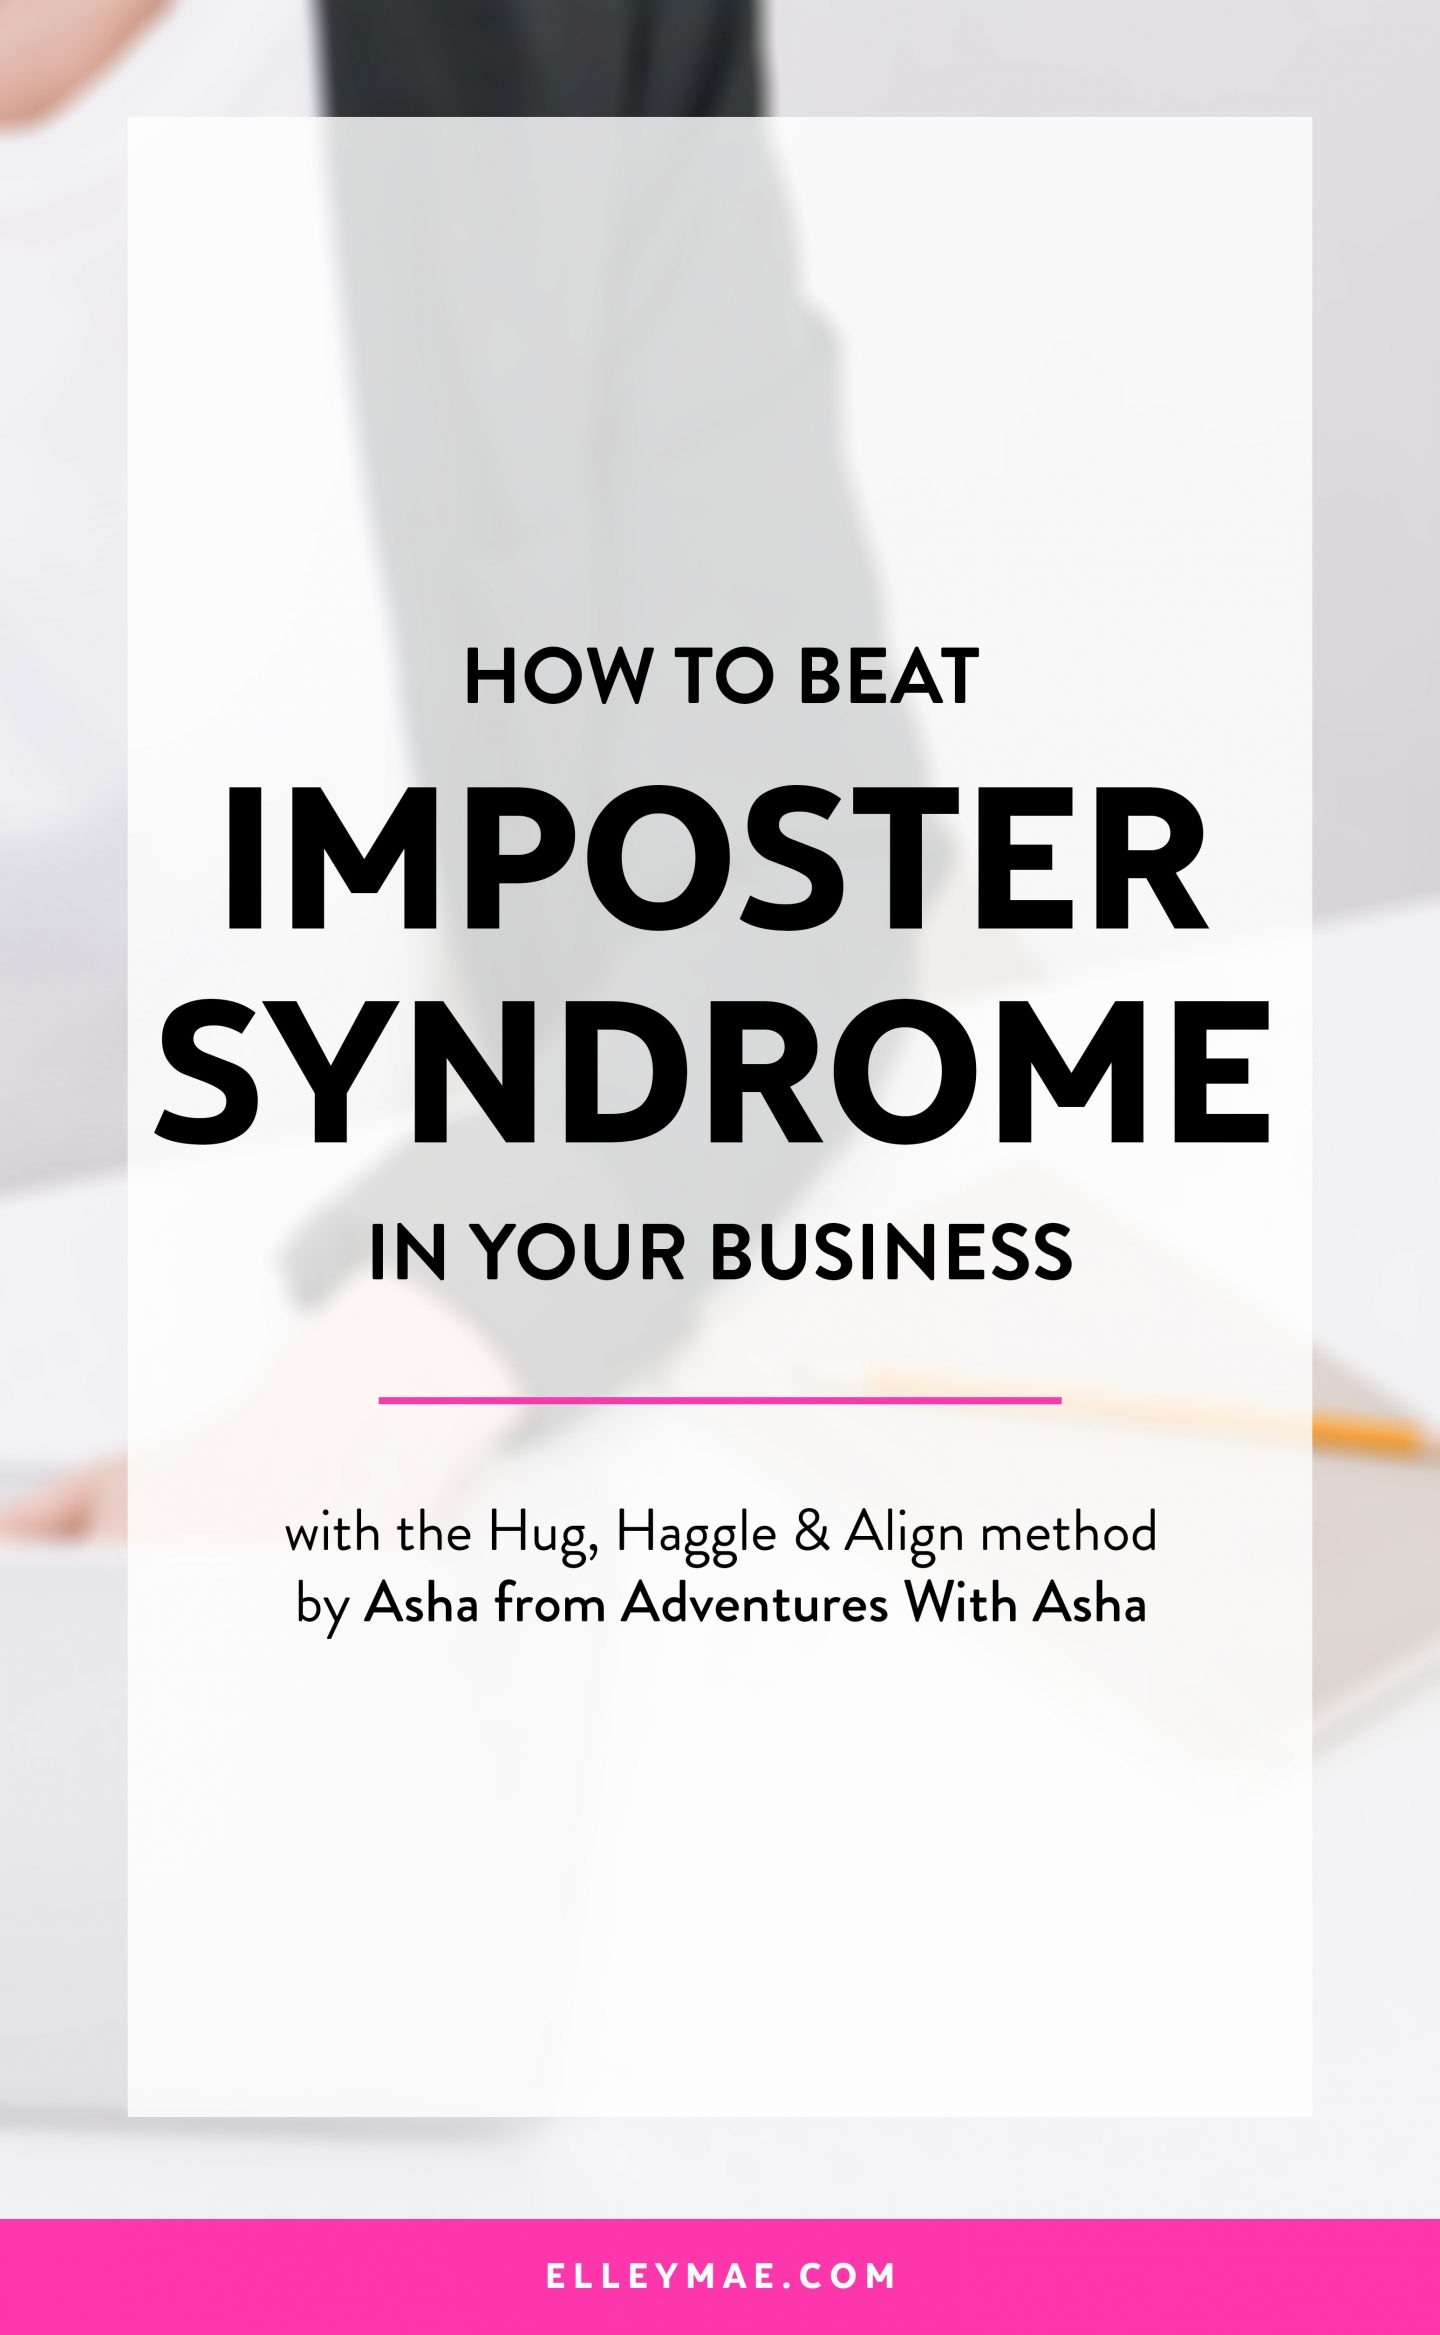 How to Beat Imposter Syndrome in Your Business | Learn how to kick self-doubt & imposter syndrome to the curb with this incredible guest post by Asha from Adventures With Asha | #impostersyndrome #entrepreneur #selfdoubt | Imposter Syndrome, Entrepreneur Mindset, Entrepreneur Quotes, Businesswoman, Business Quotes, Ladies in Business, Businesswomen, Career Girl, Career Advice, Career Advice for Women, Self-Doubt, Online Business Tips | ElleyMae.com